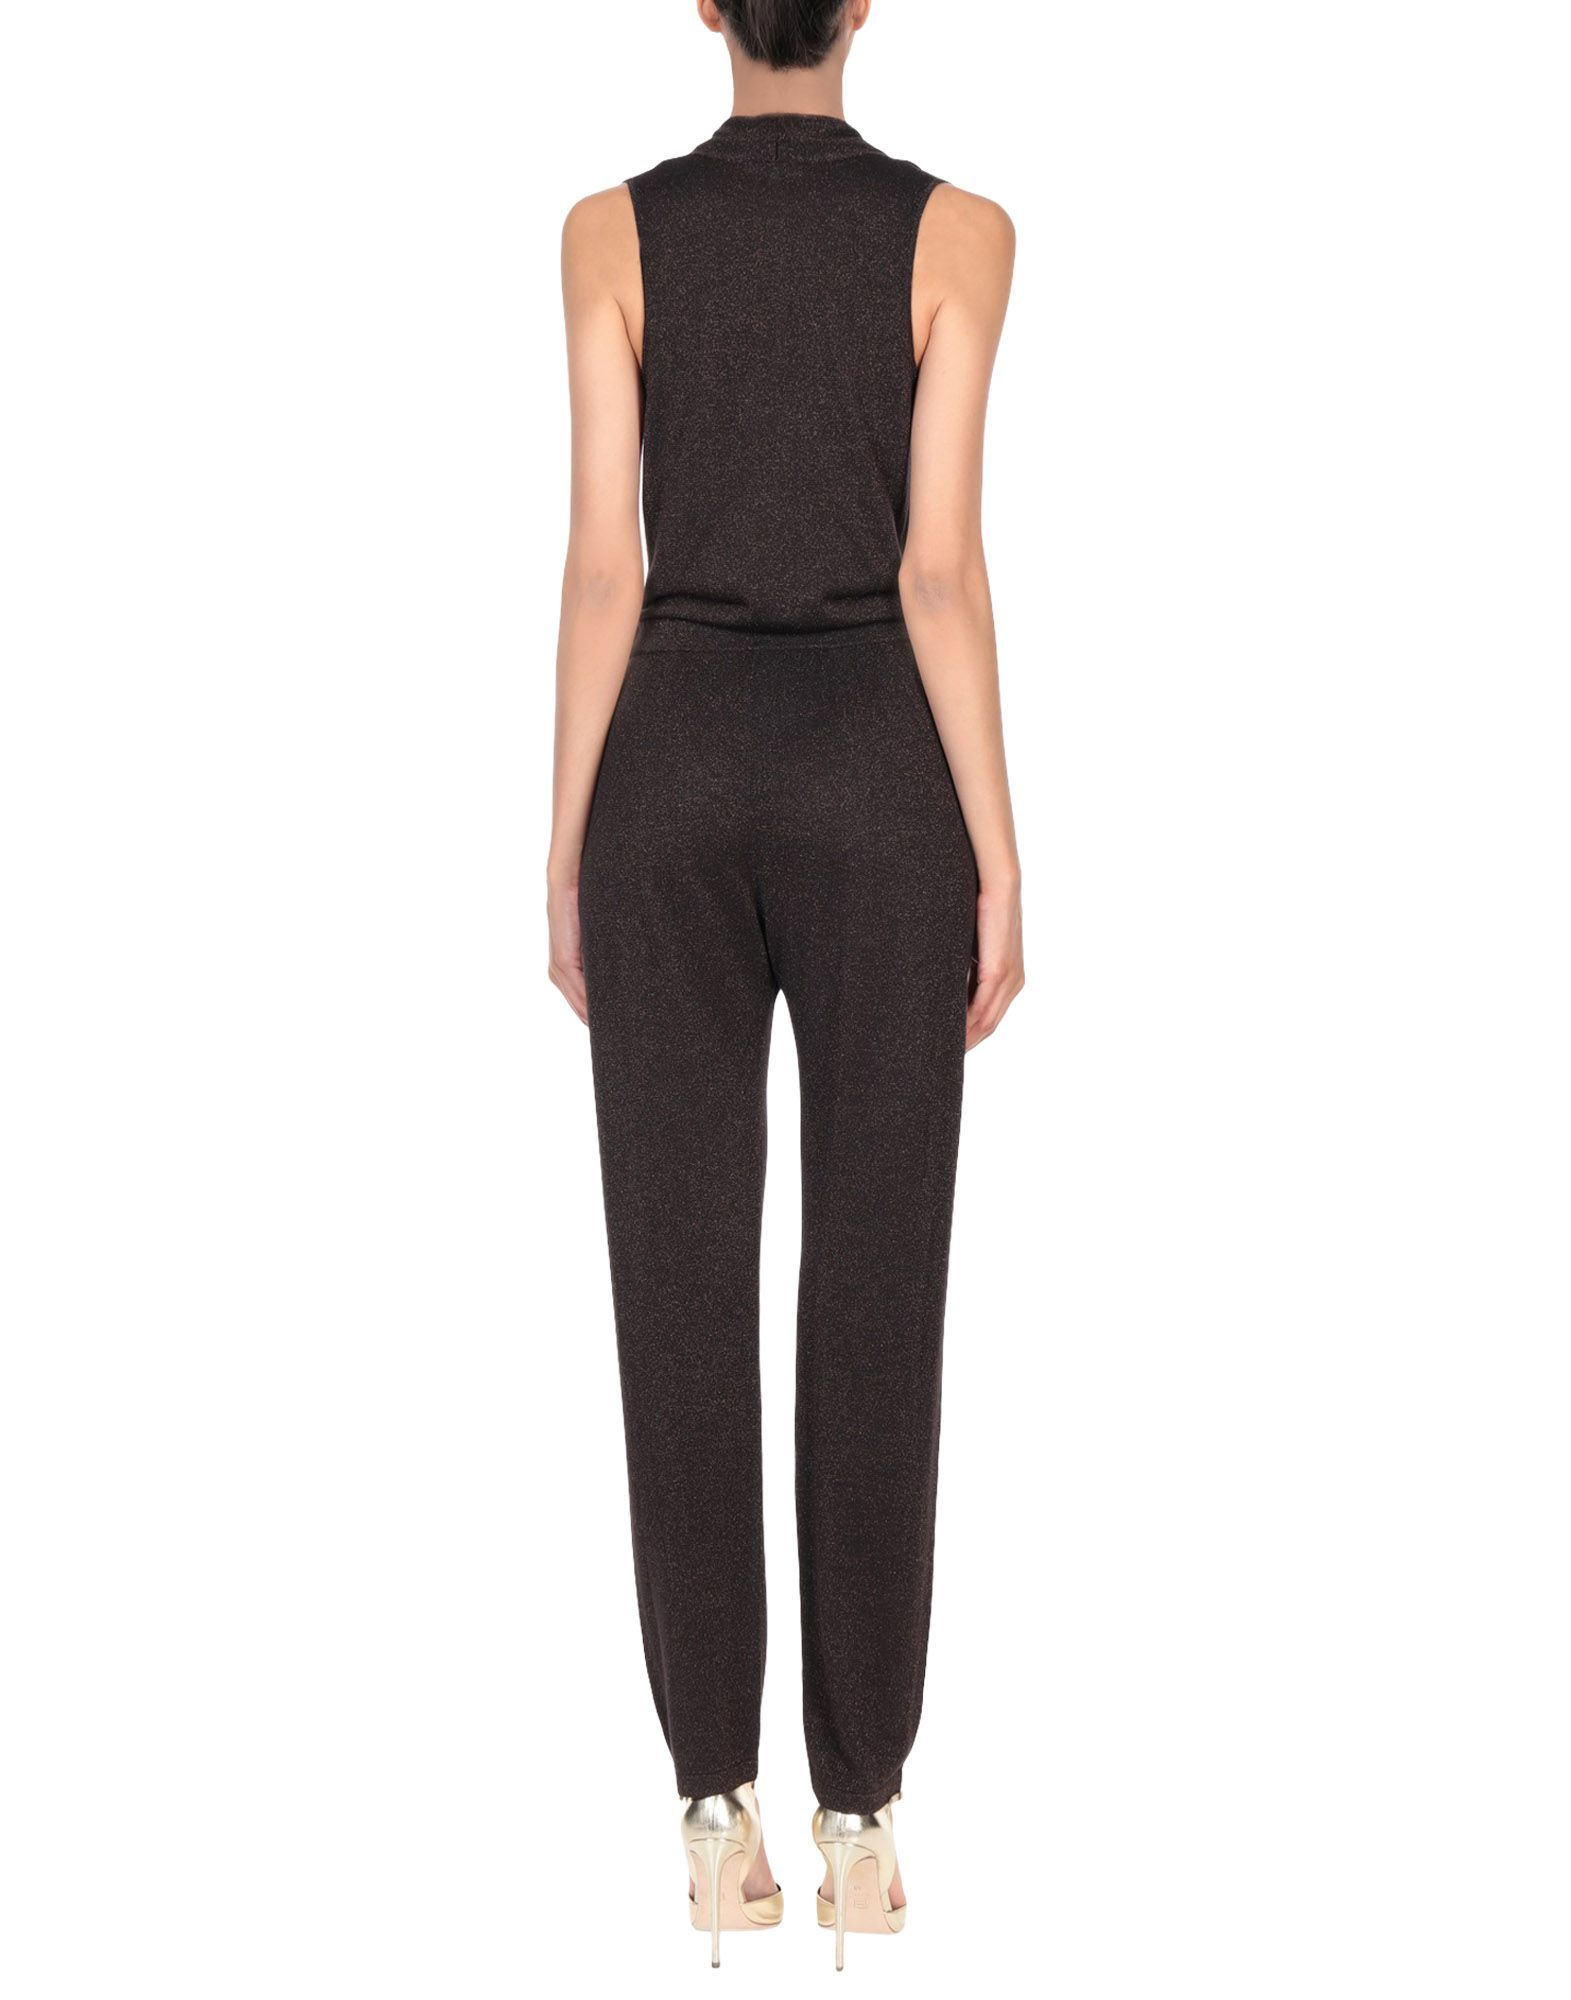 Patrizia Pepe Black Sleeveless Jumpsuit